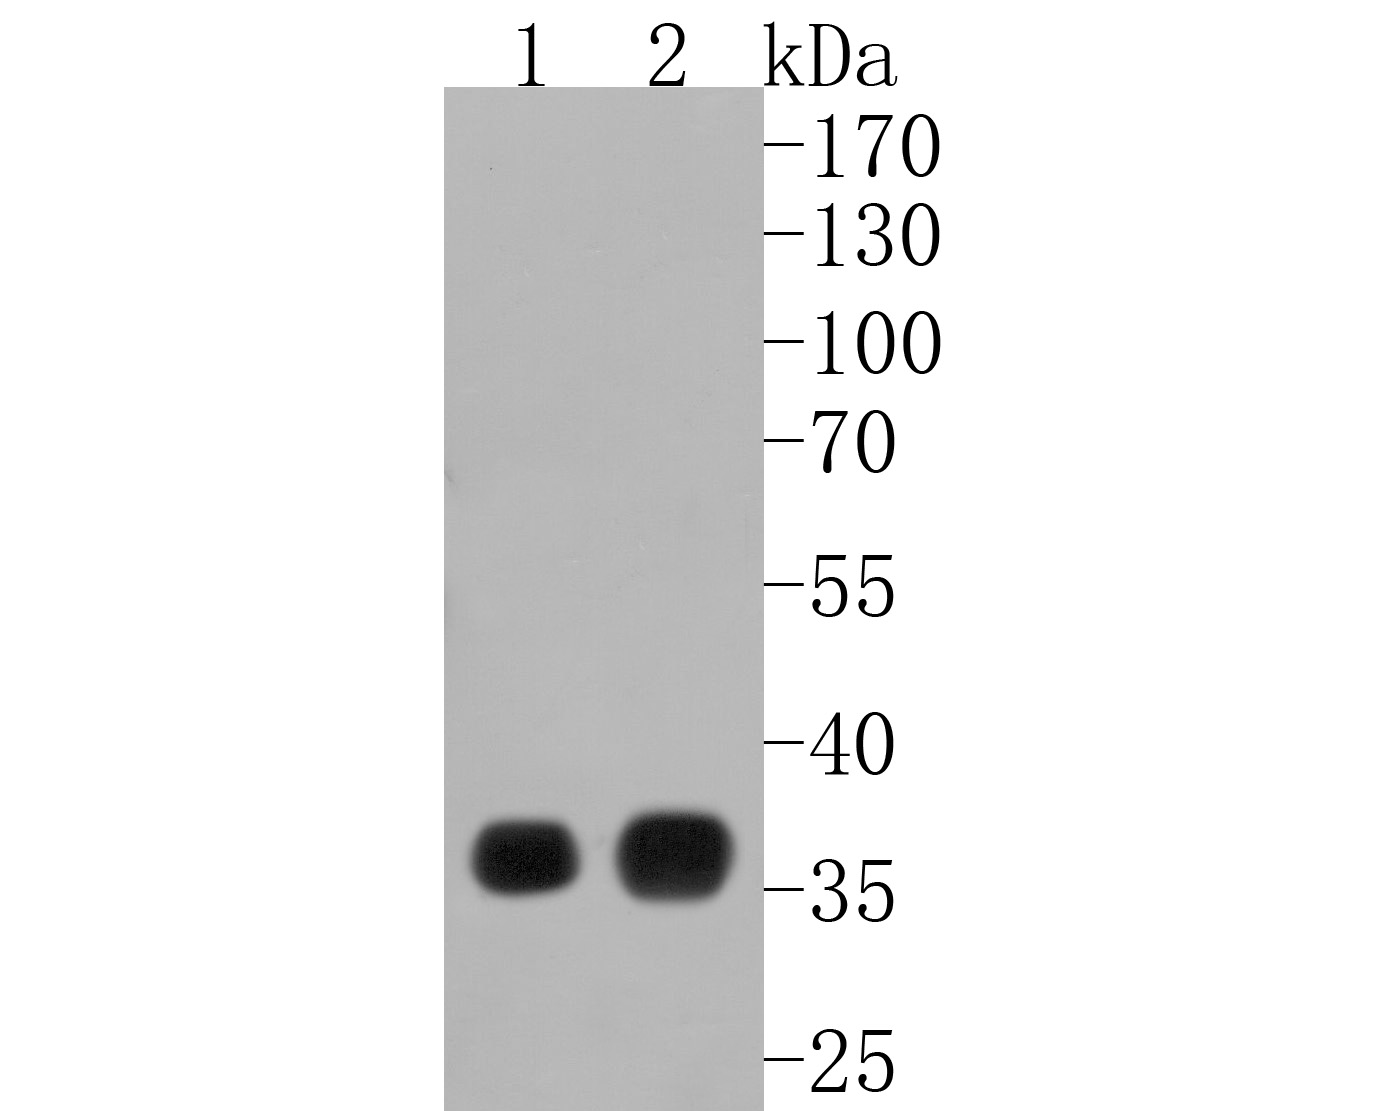 Western blot analysis of delta Sarcoglycan on human lung tissue lysates. Proteins were transferred to a PVDF membrane and blocked with 5% BSA in PBS for 1 hour at room temperature. The primary antibody (ET1703-88, 1/500) was used in 5% BSA at room temperature for 2 hours. Goat Anti-Rabbit IgG - HRP Secondary Antibody (HA1001) at 1:5,000 dilution was used for 1 hour at room temperature.